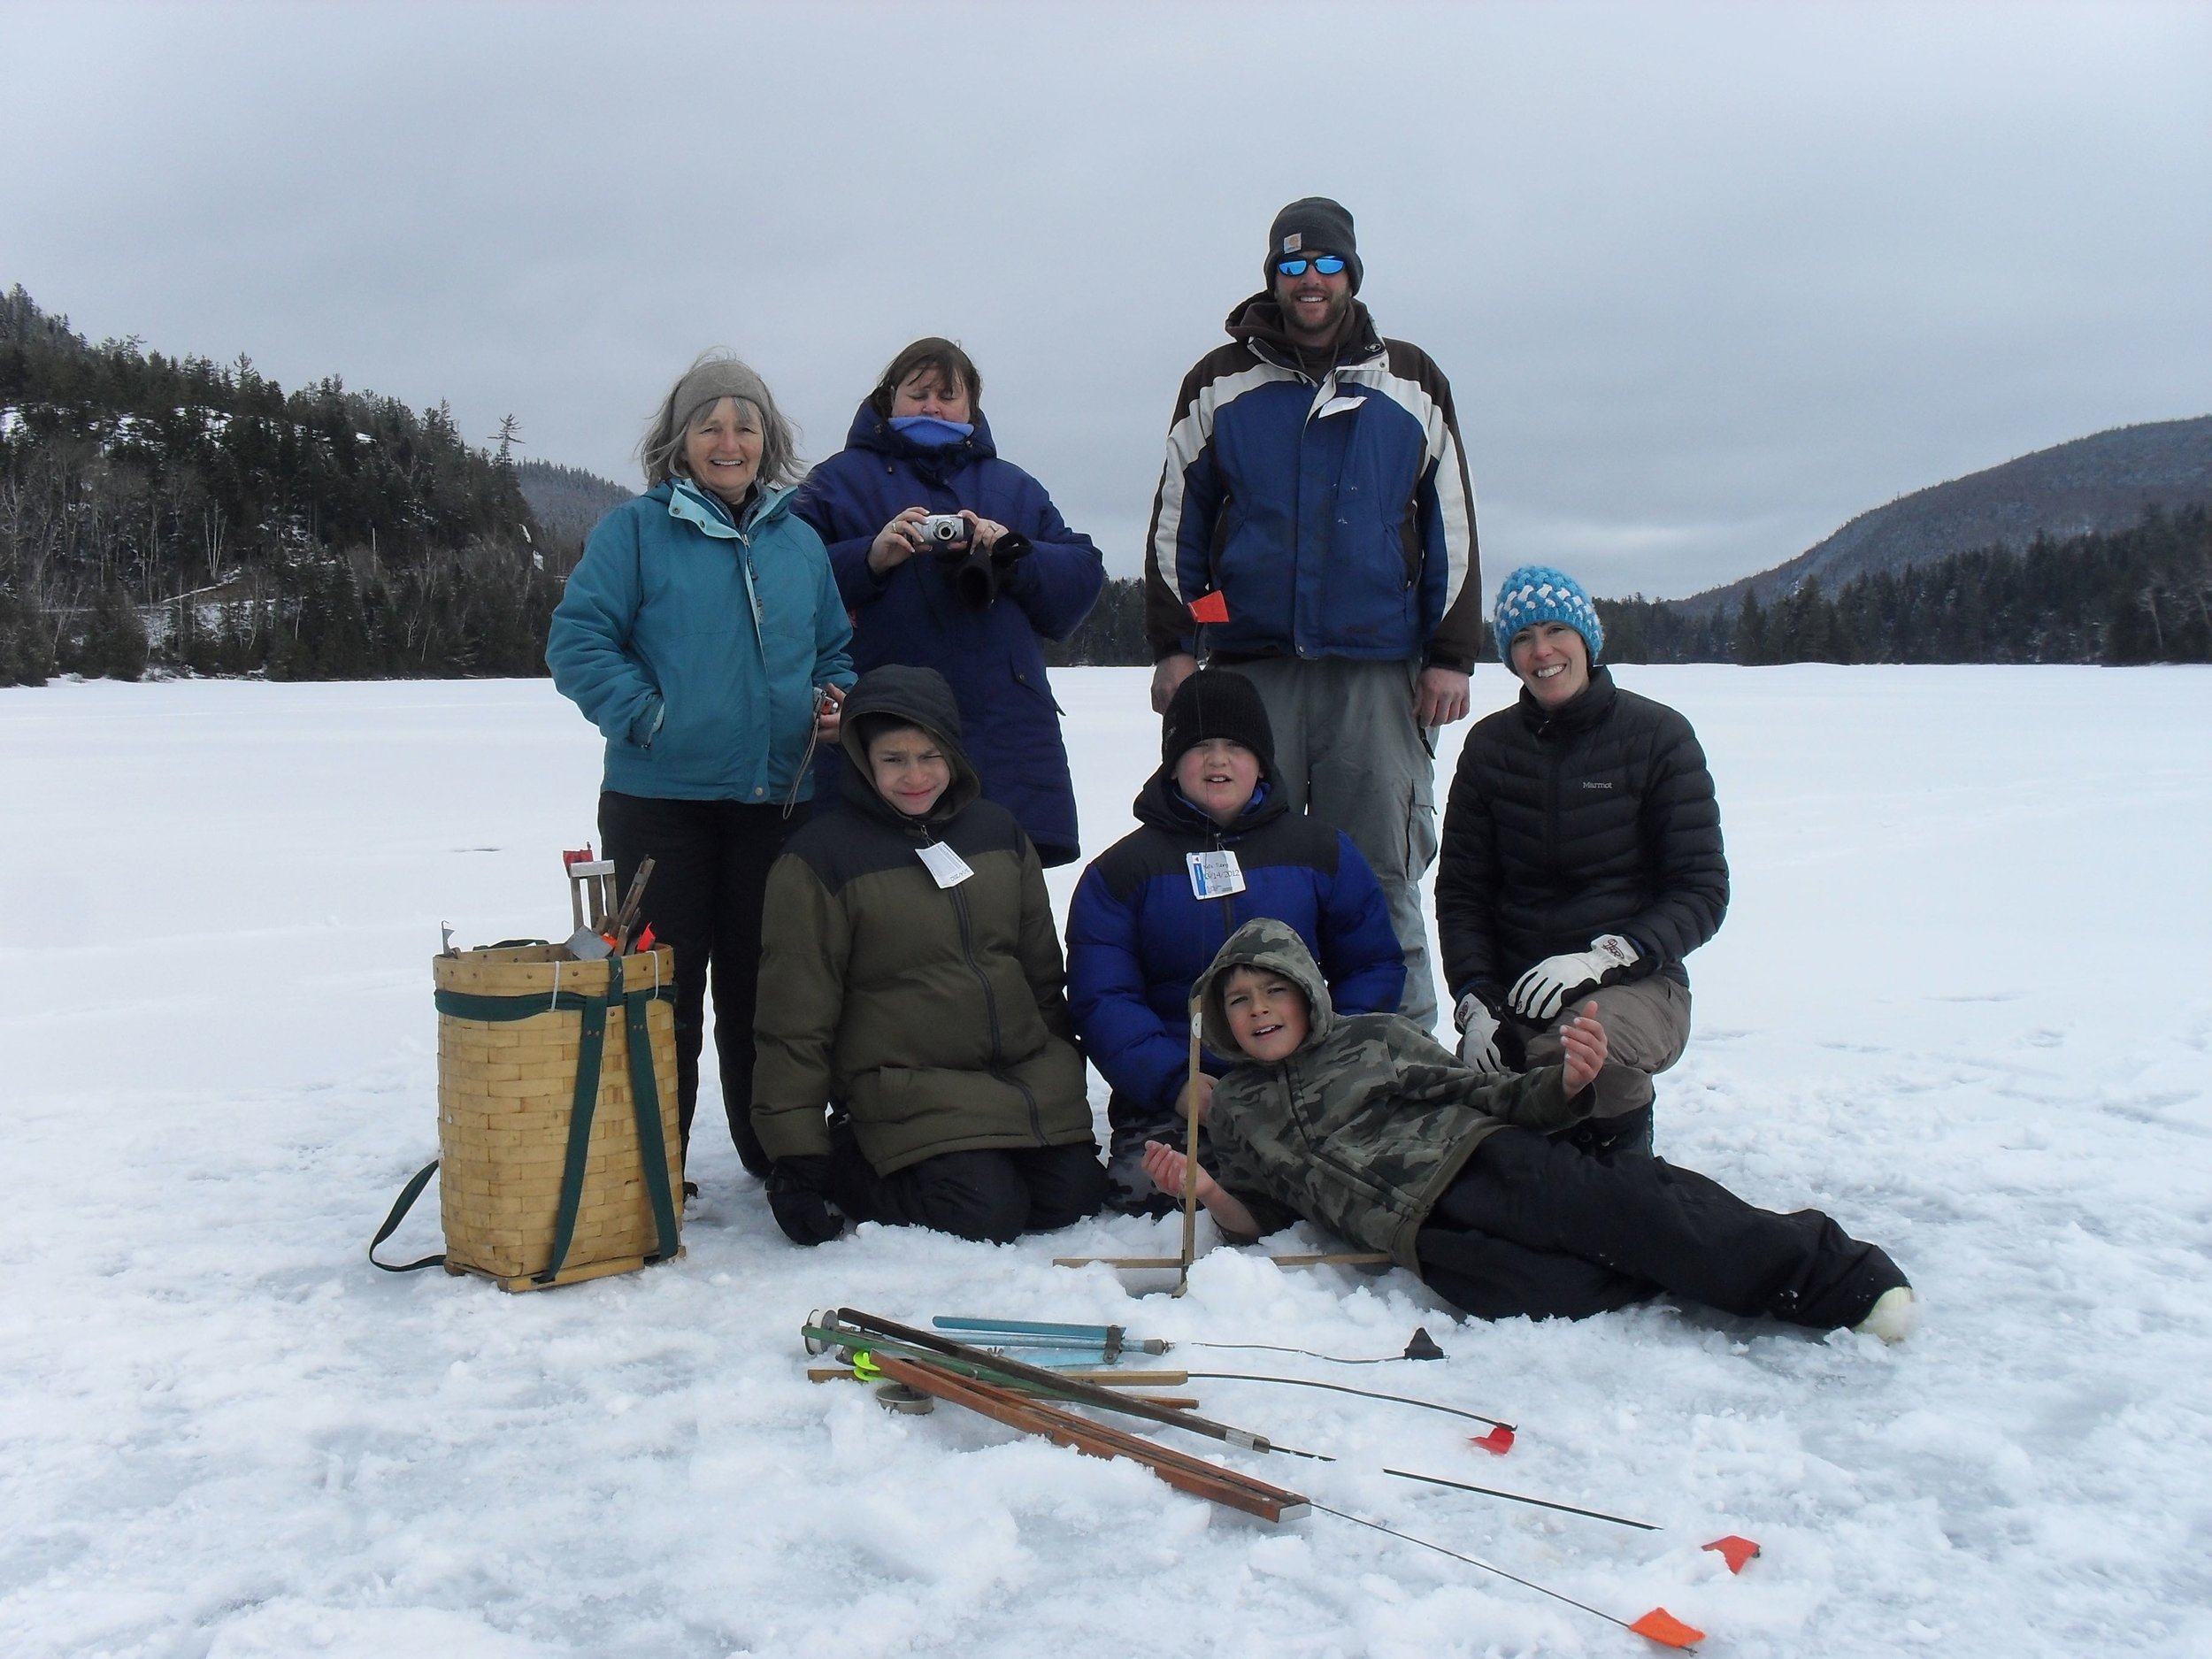 Group outings for all seasons. Let's get started! -